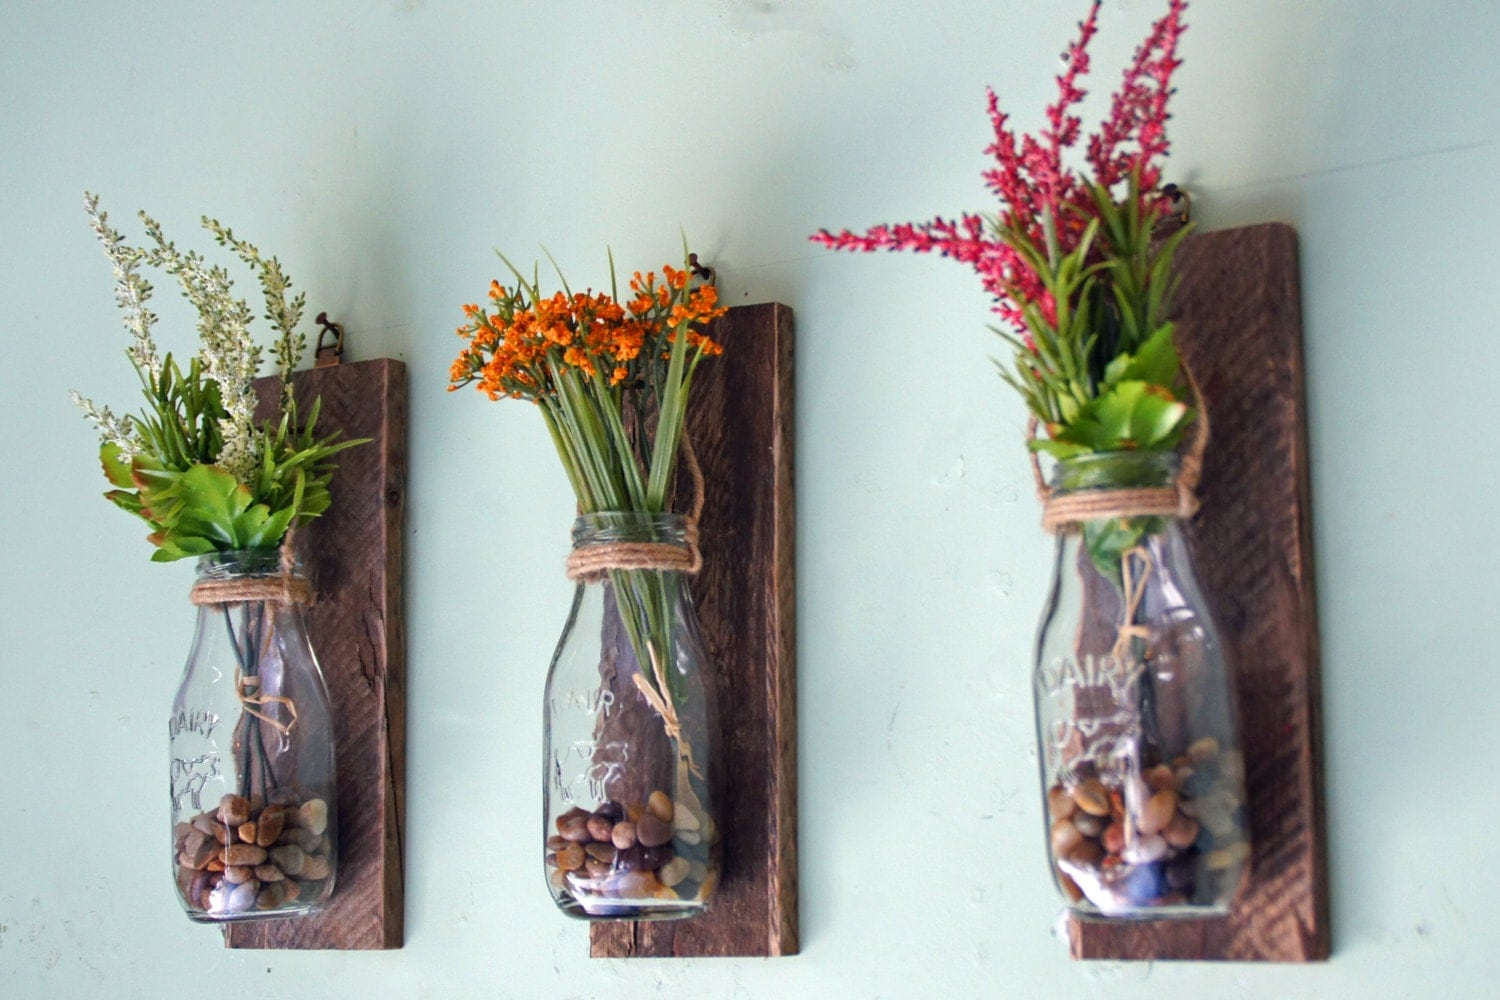 Wall vases for flowers - Hanging Milk Bottle Wall Vases Wall Mounted Flower Vases Hanging Flower Vases Reclaimed Wood Rustic Floral Decor Milk Bottles Set Of 3